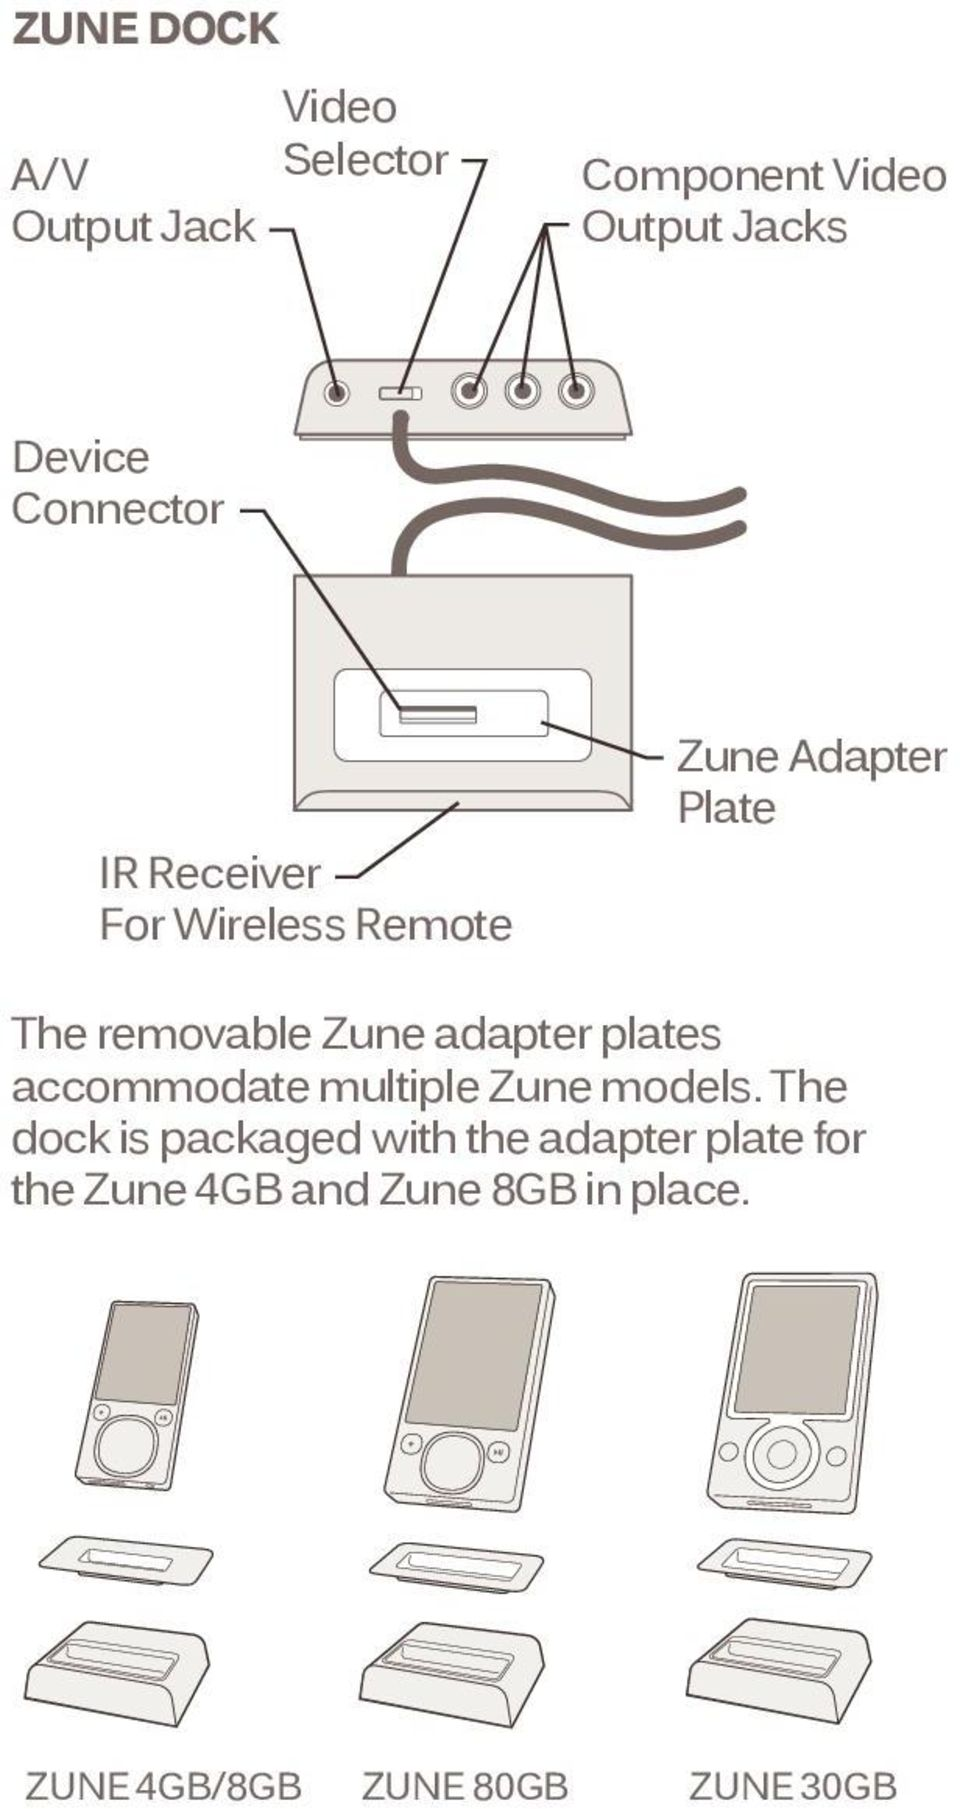 adapter plates accommodate multiple Zune models.